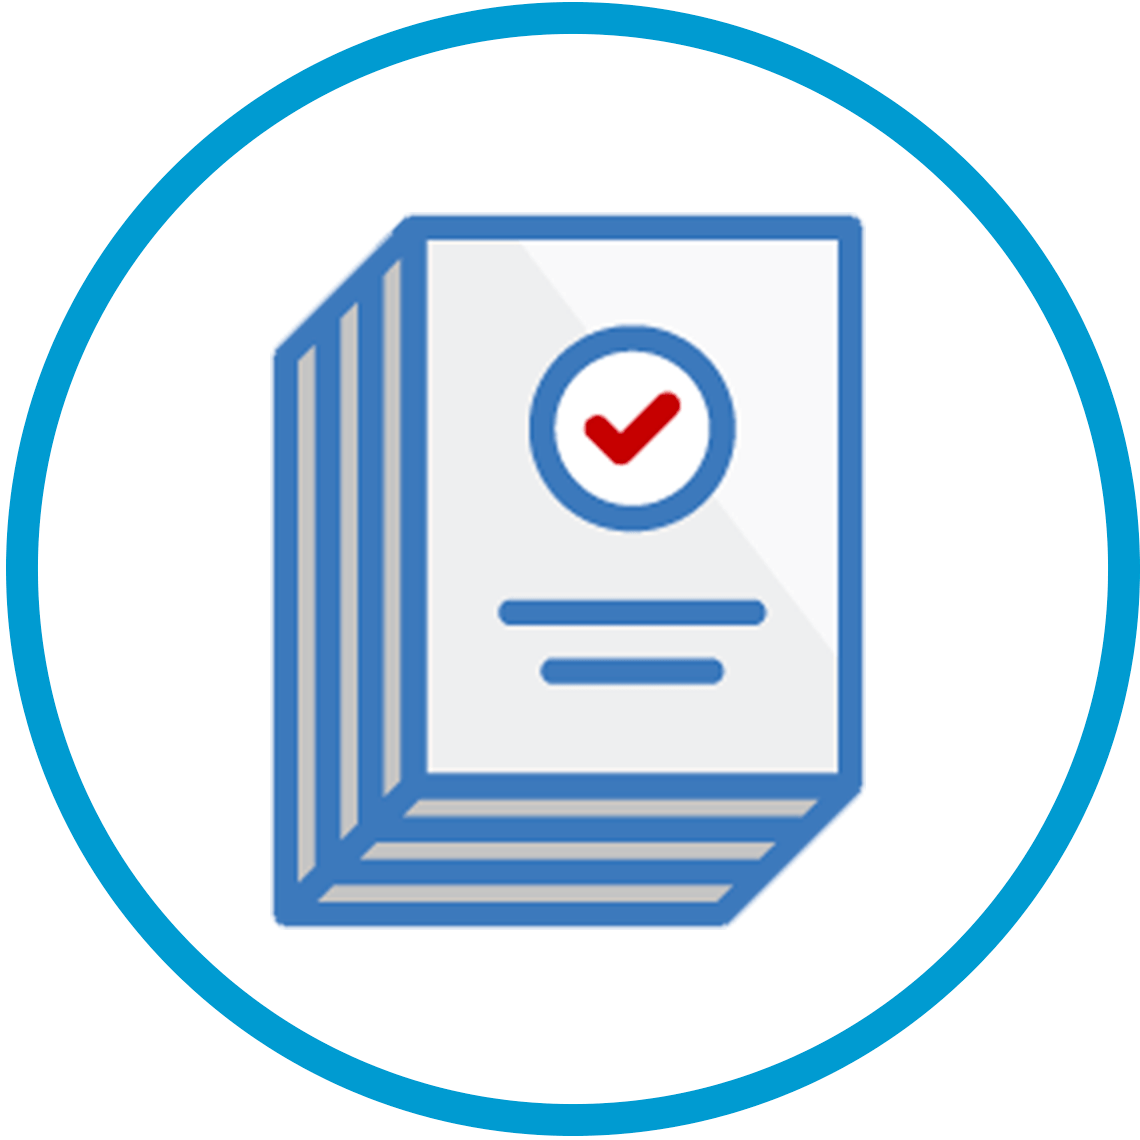 Clinical Trial Regulatory Templates Icon